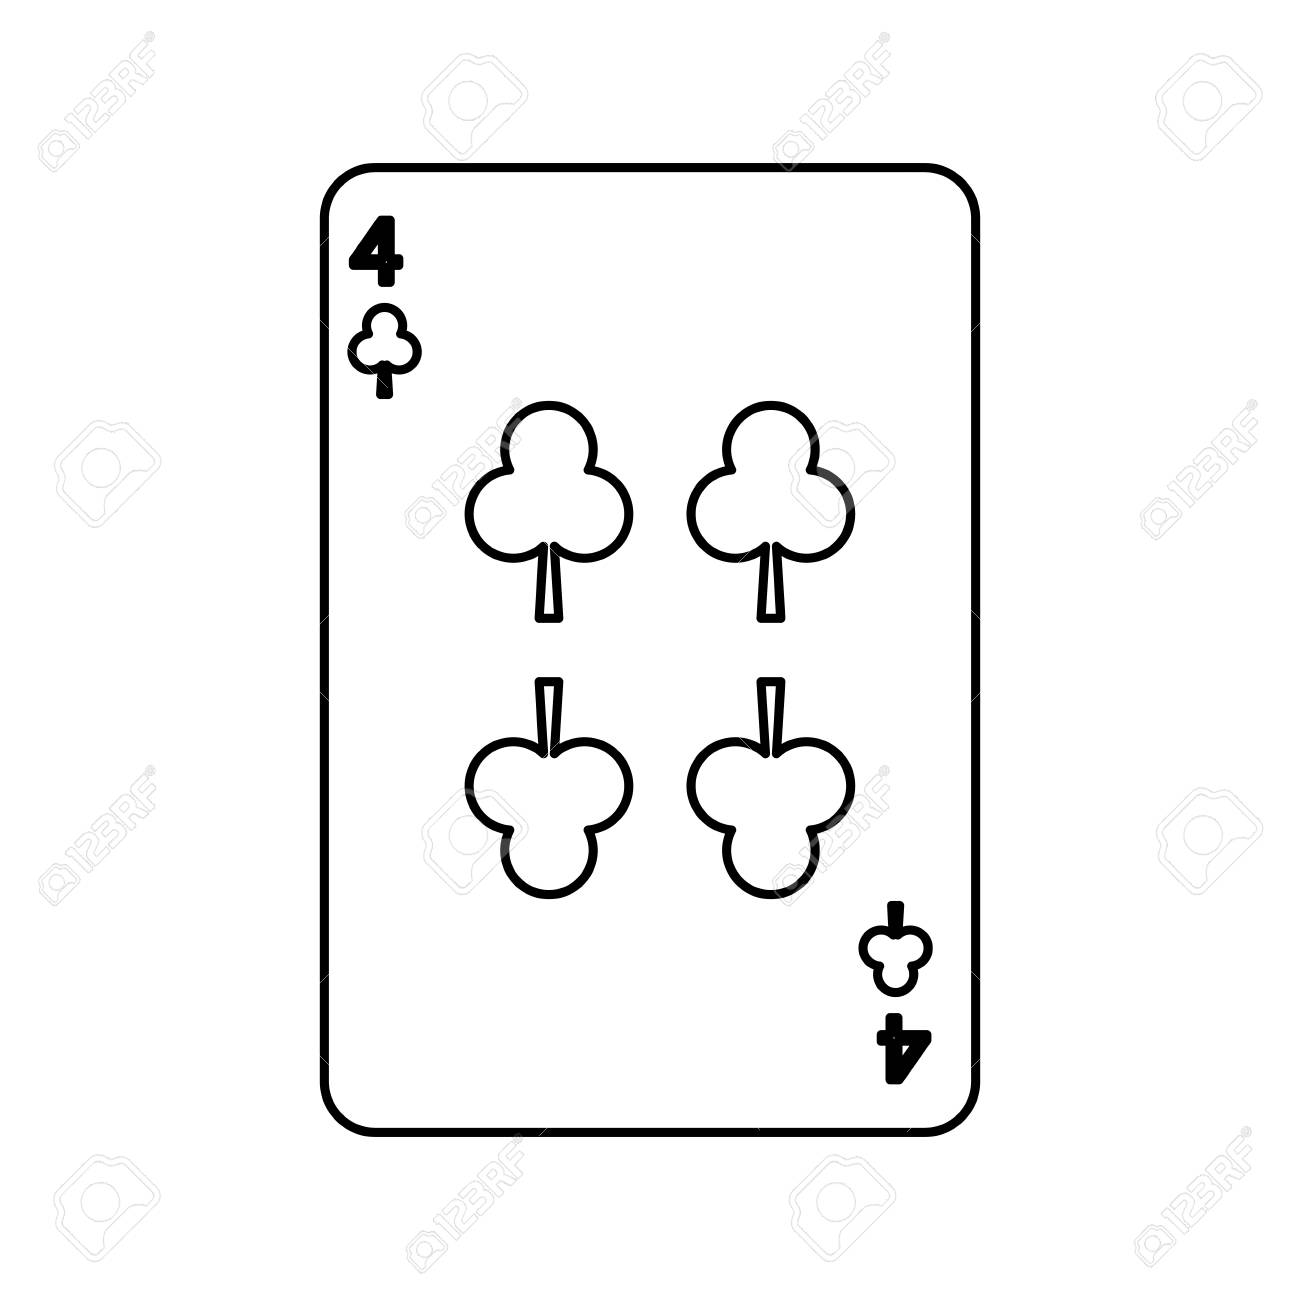 hight resolution of poker playing club card casino gambling icon vector illustration stock vector 90170495